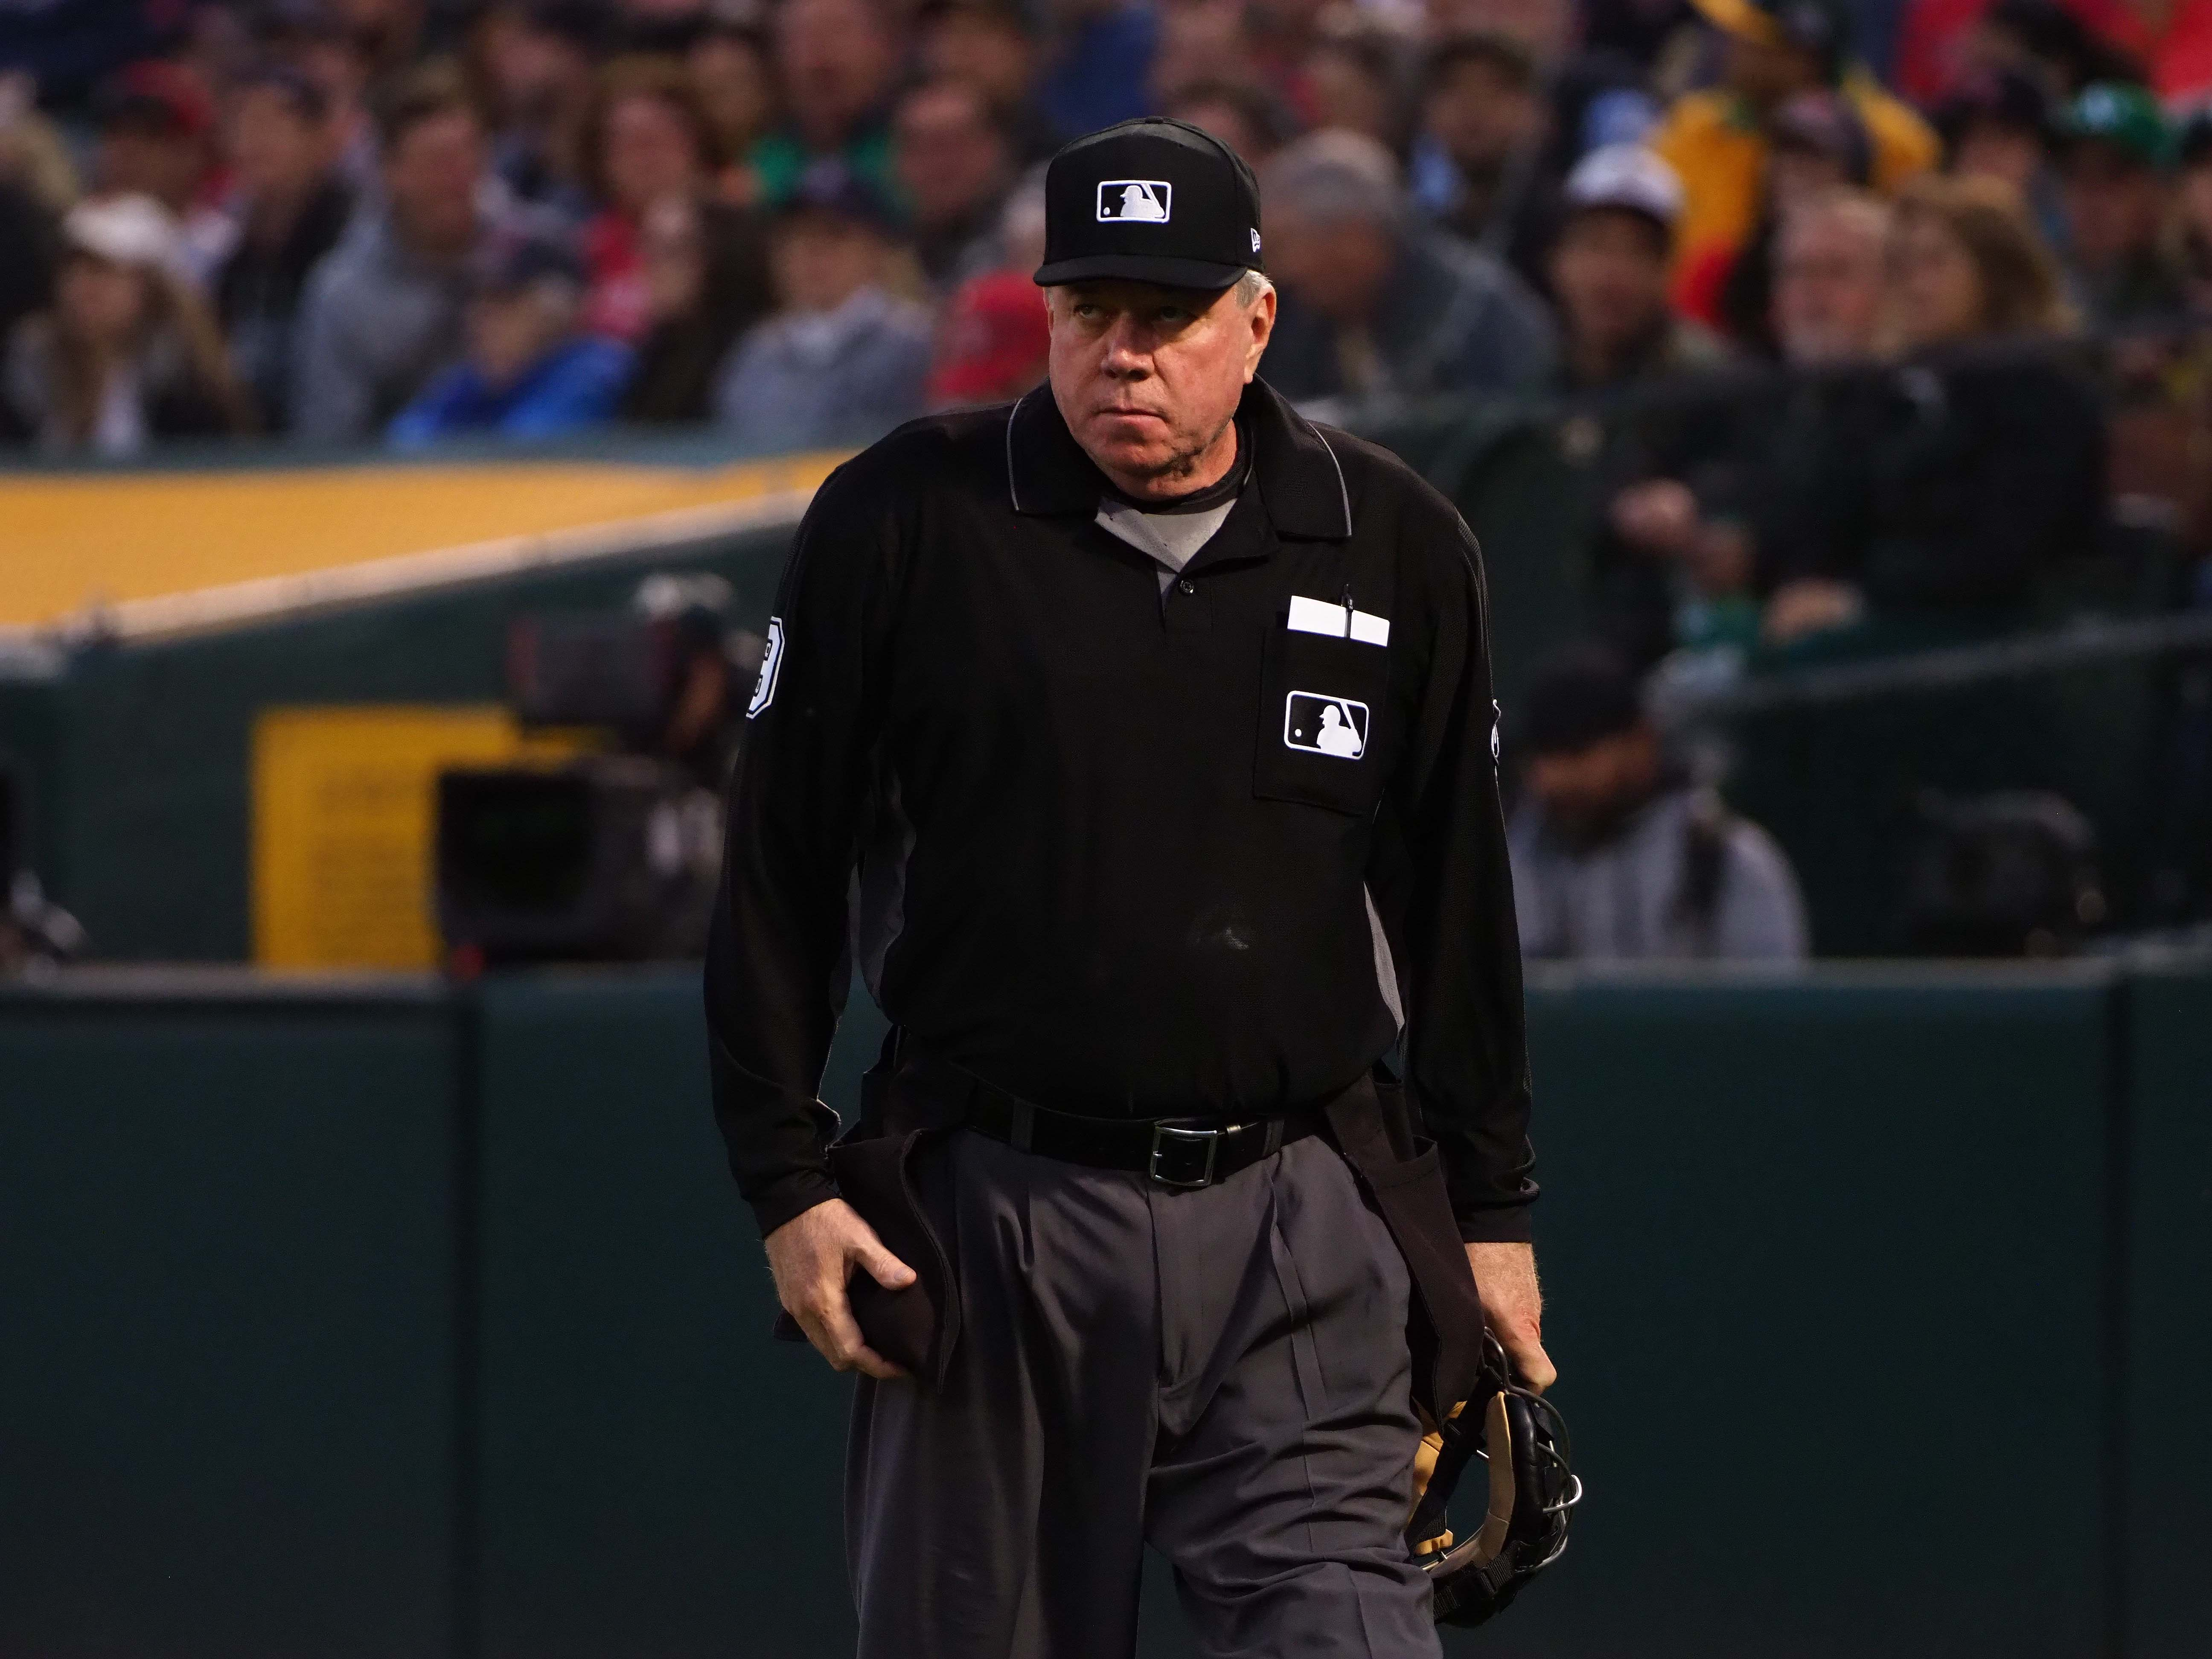 Cubs coach throws drink at umpire in disgust